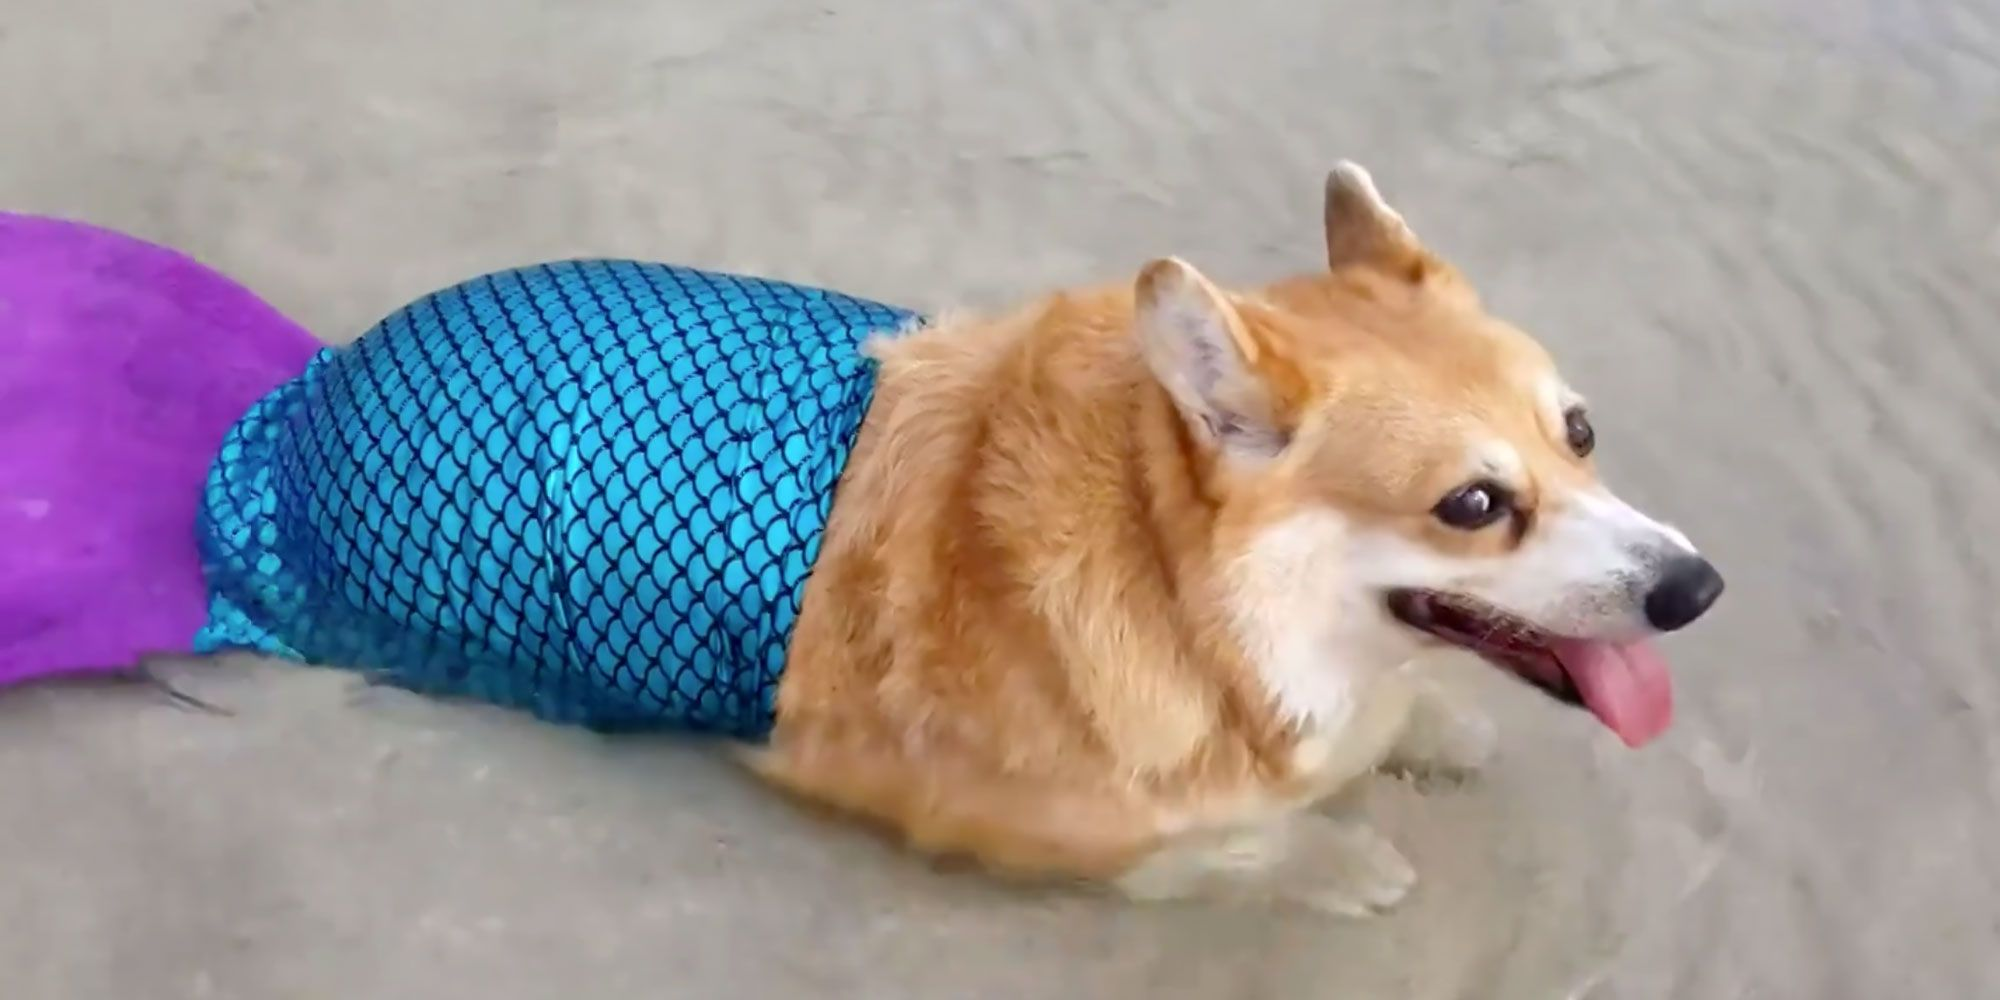 watch this dog fulfill her dream of becoming a mermaid